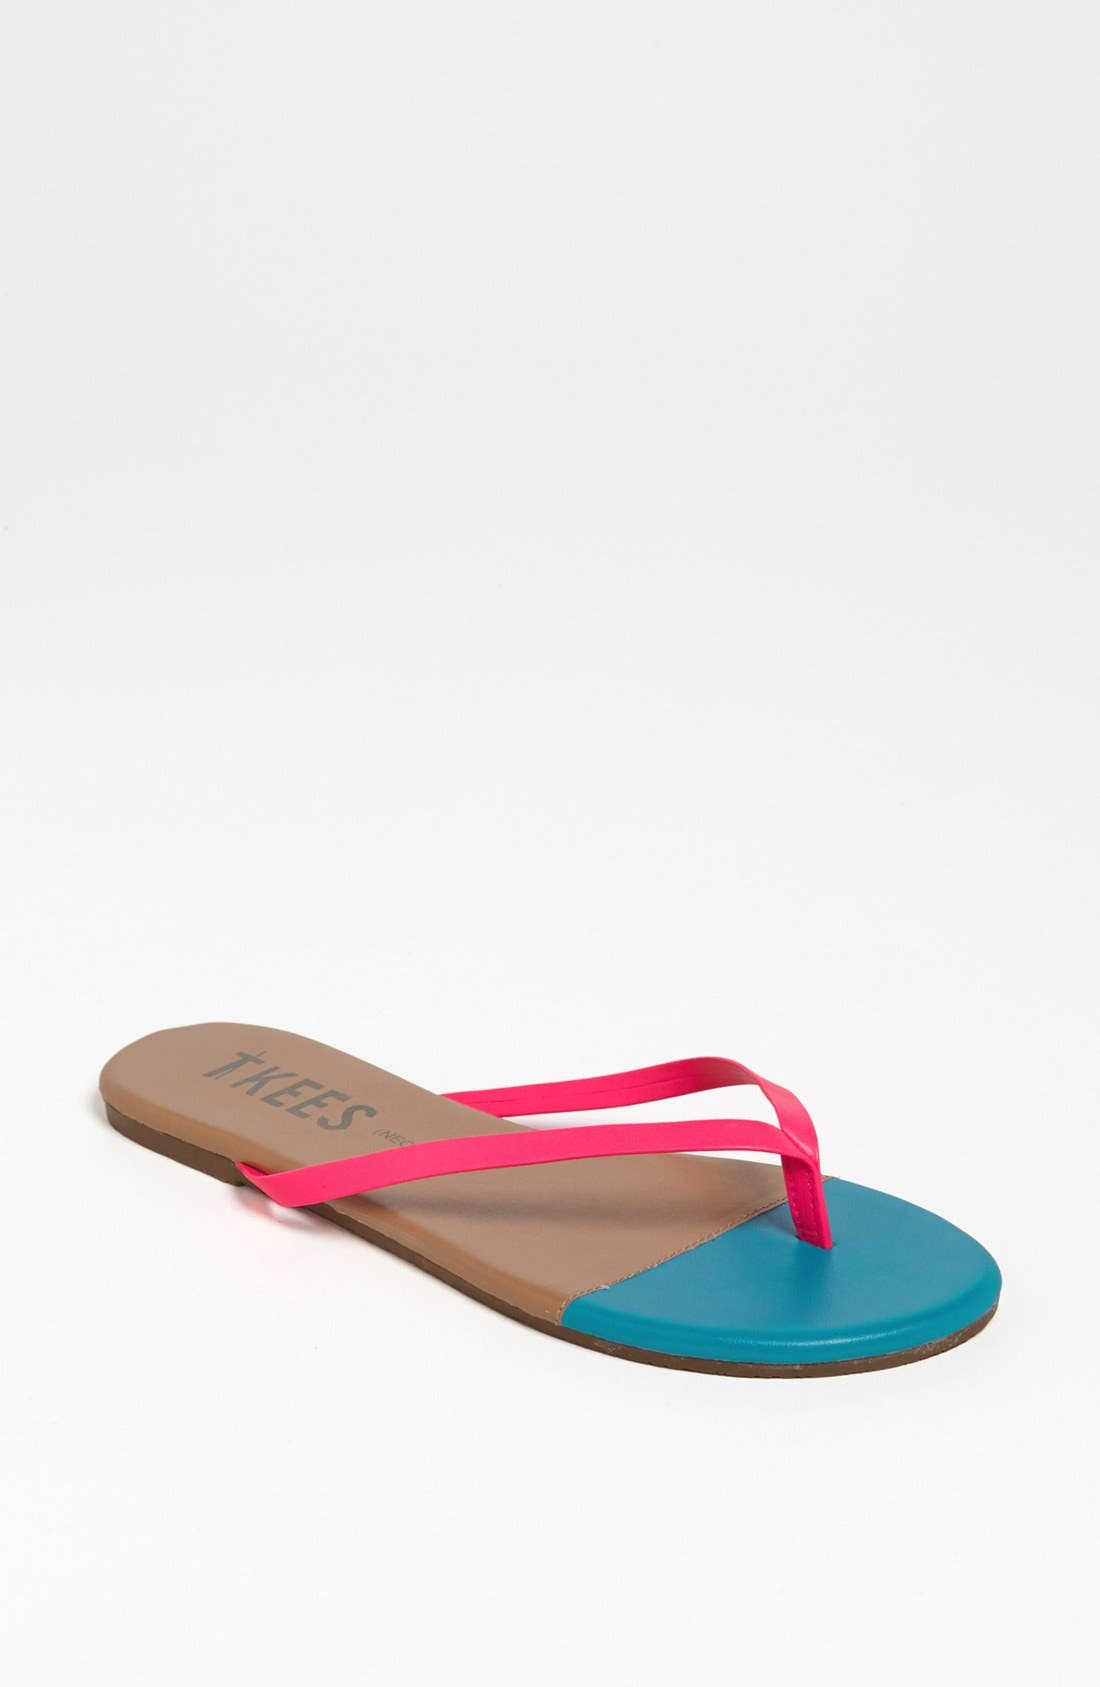 Alternate Image 1 Selected - TKEES 'Neon Tips' Flip Flop